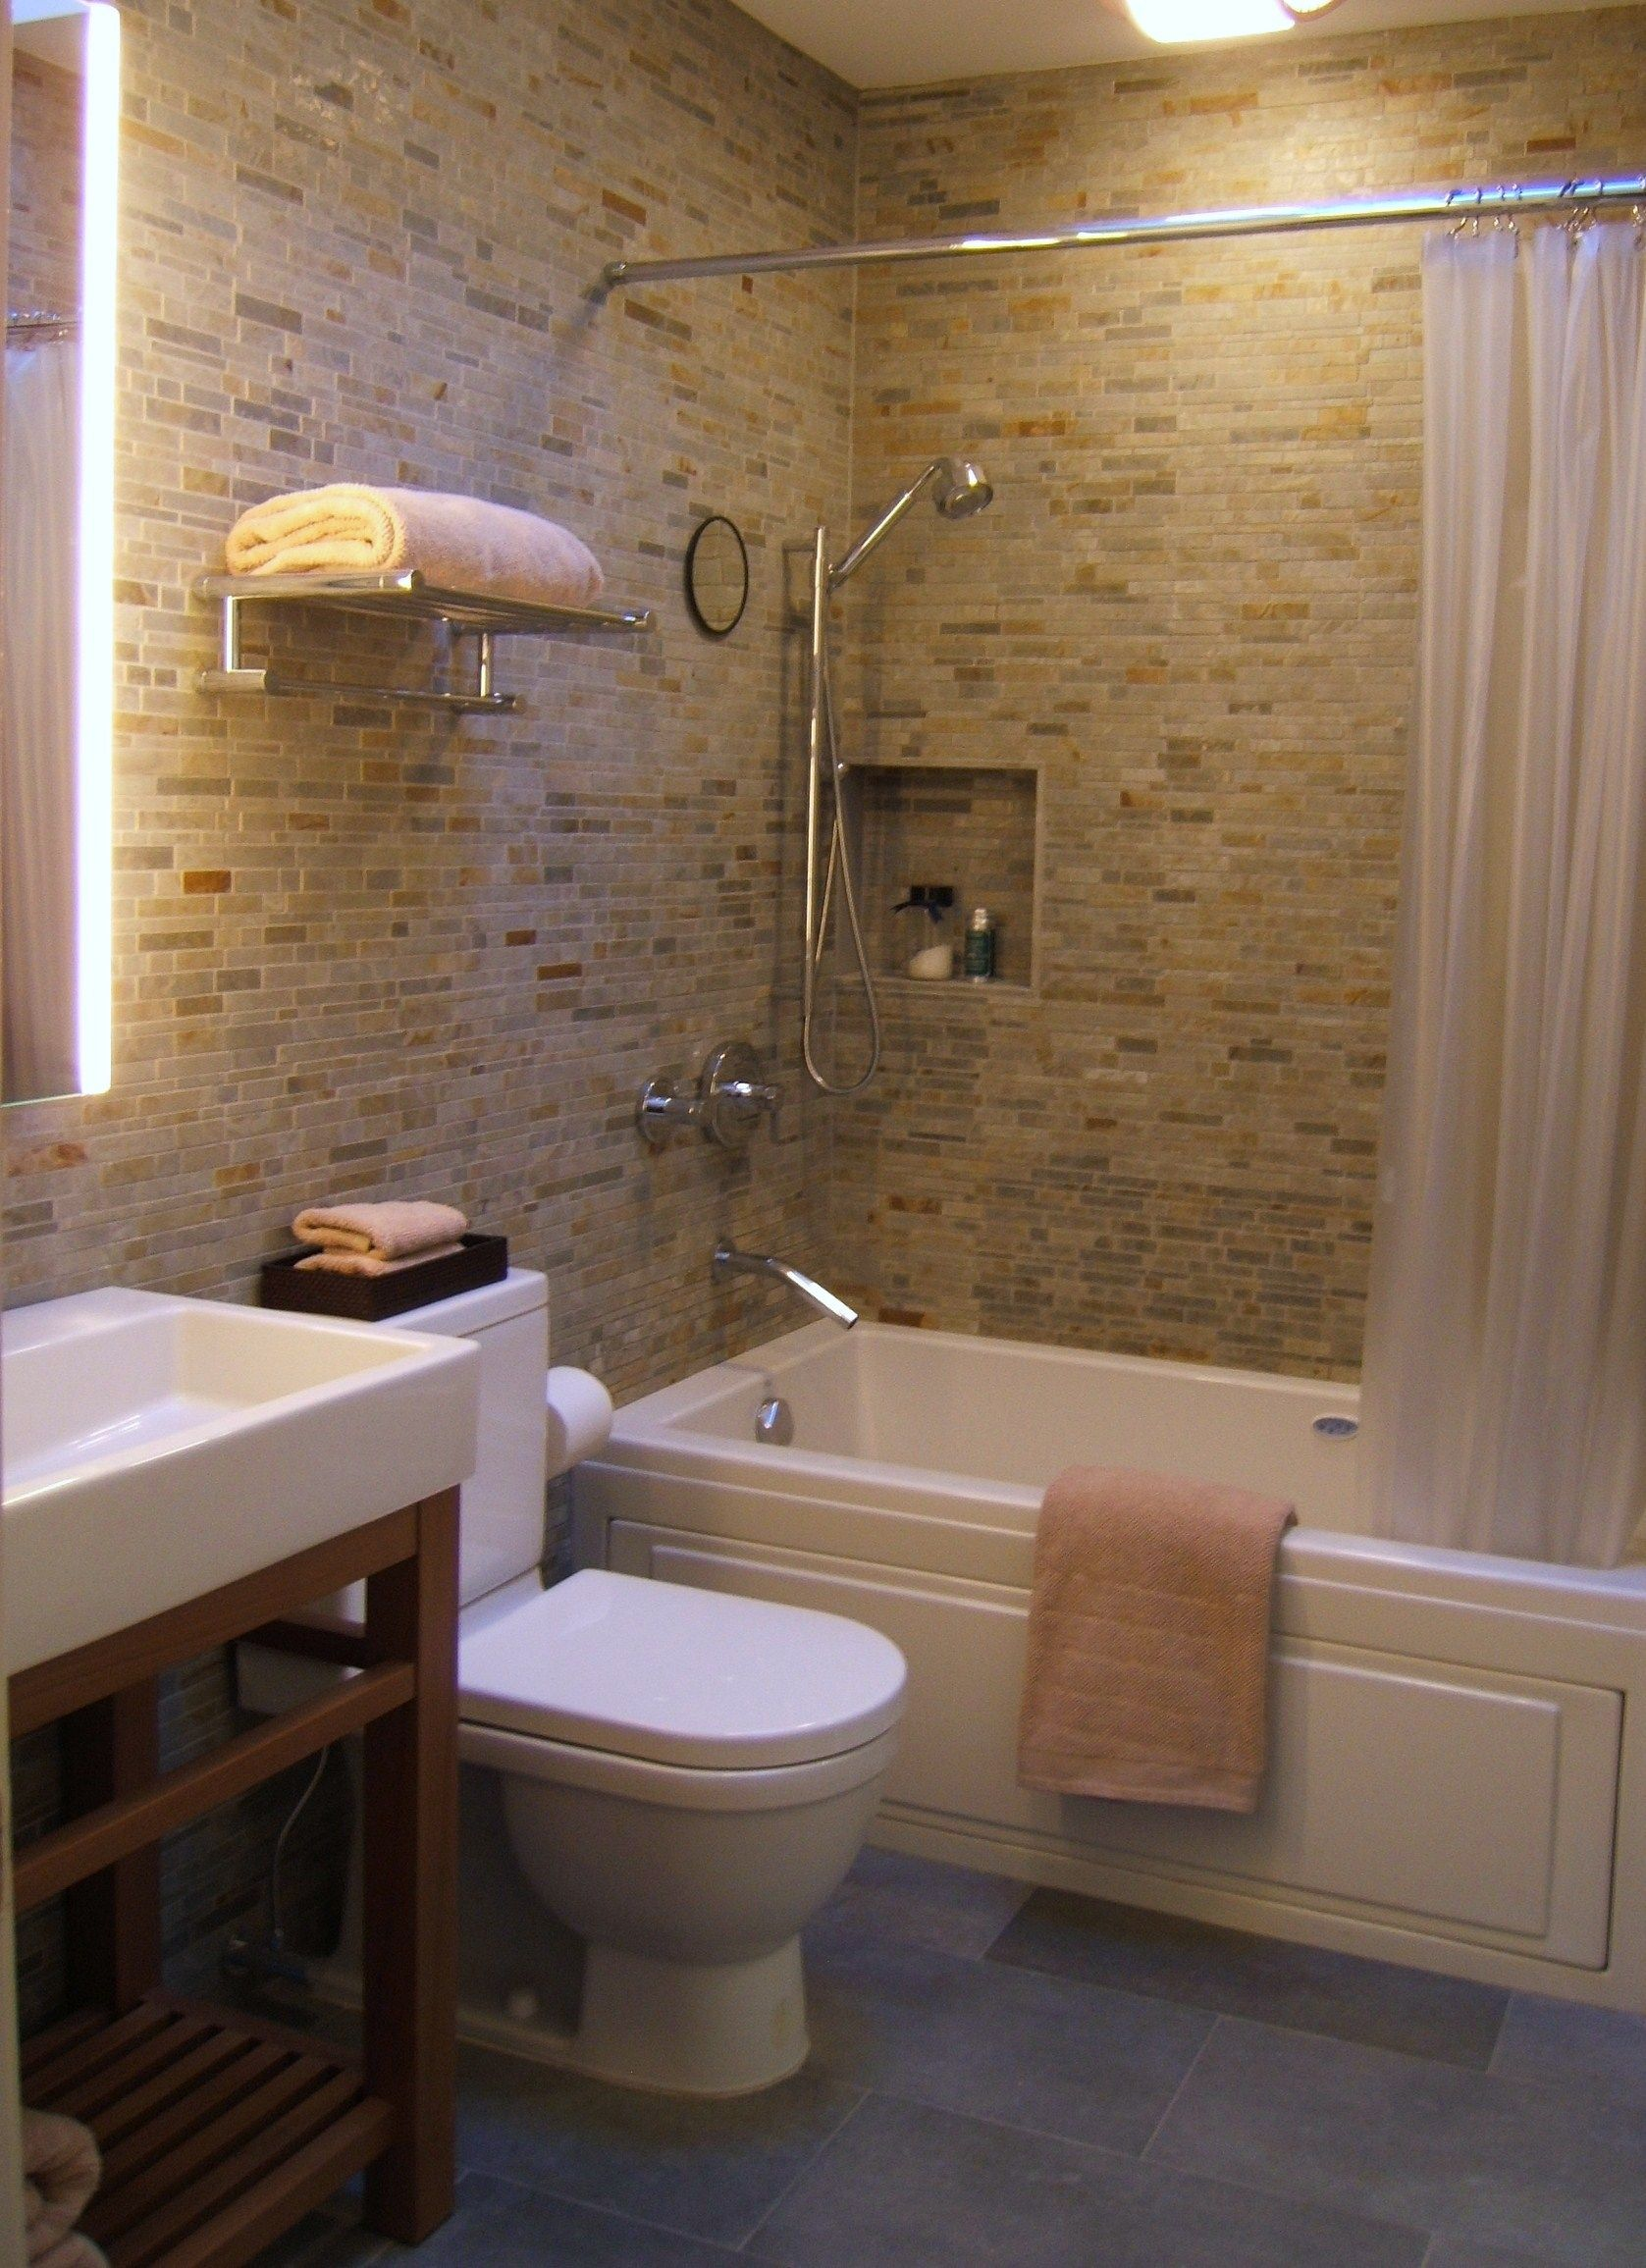 Small bathroom designs south africa small bath for Small bathroom layout with tub